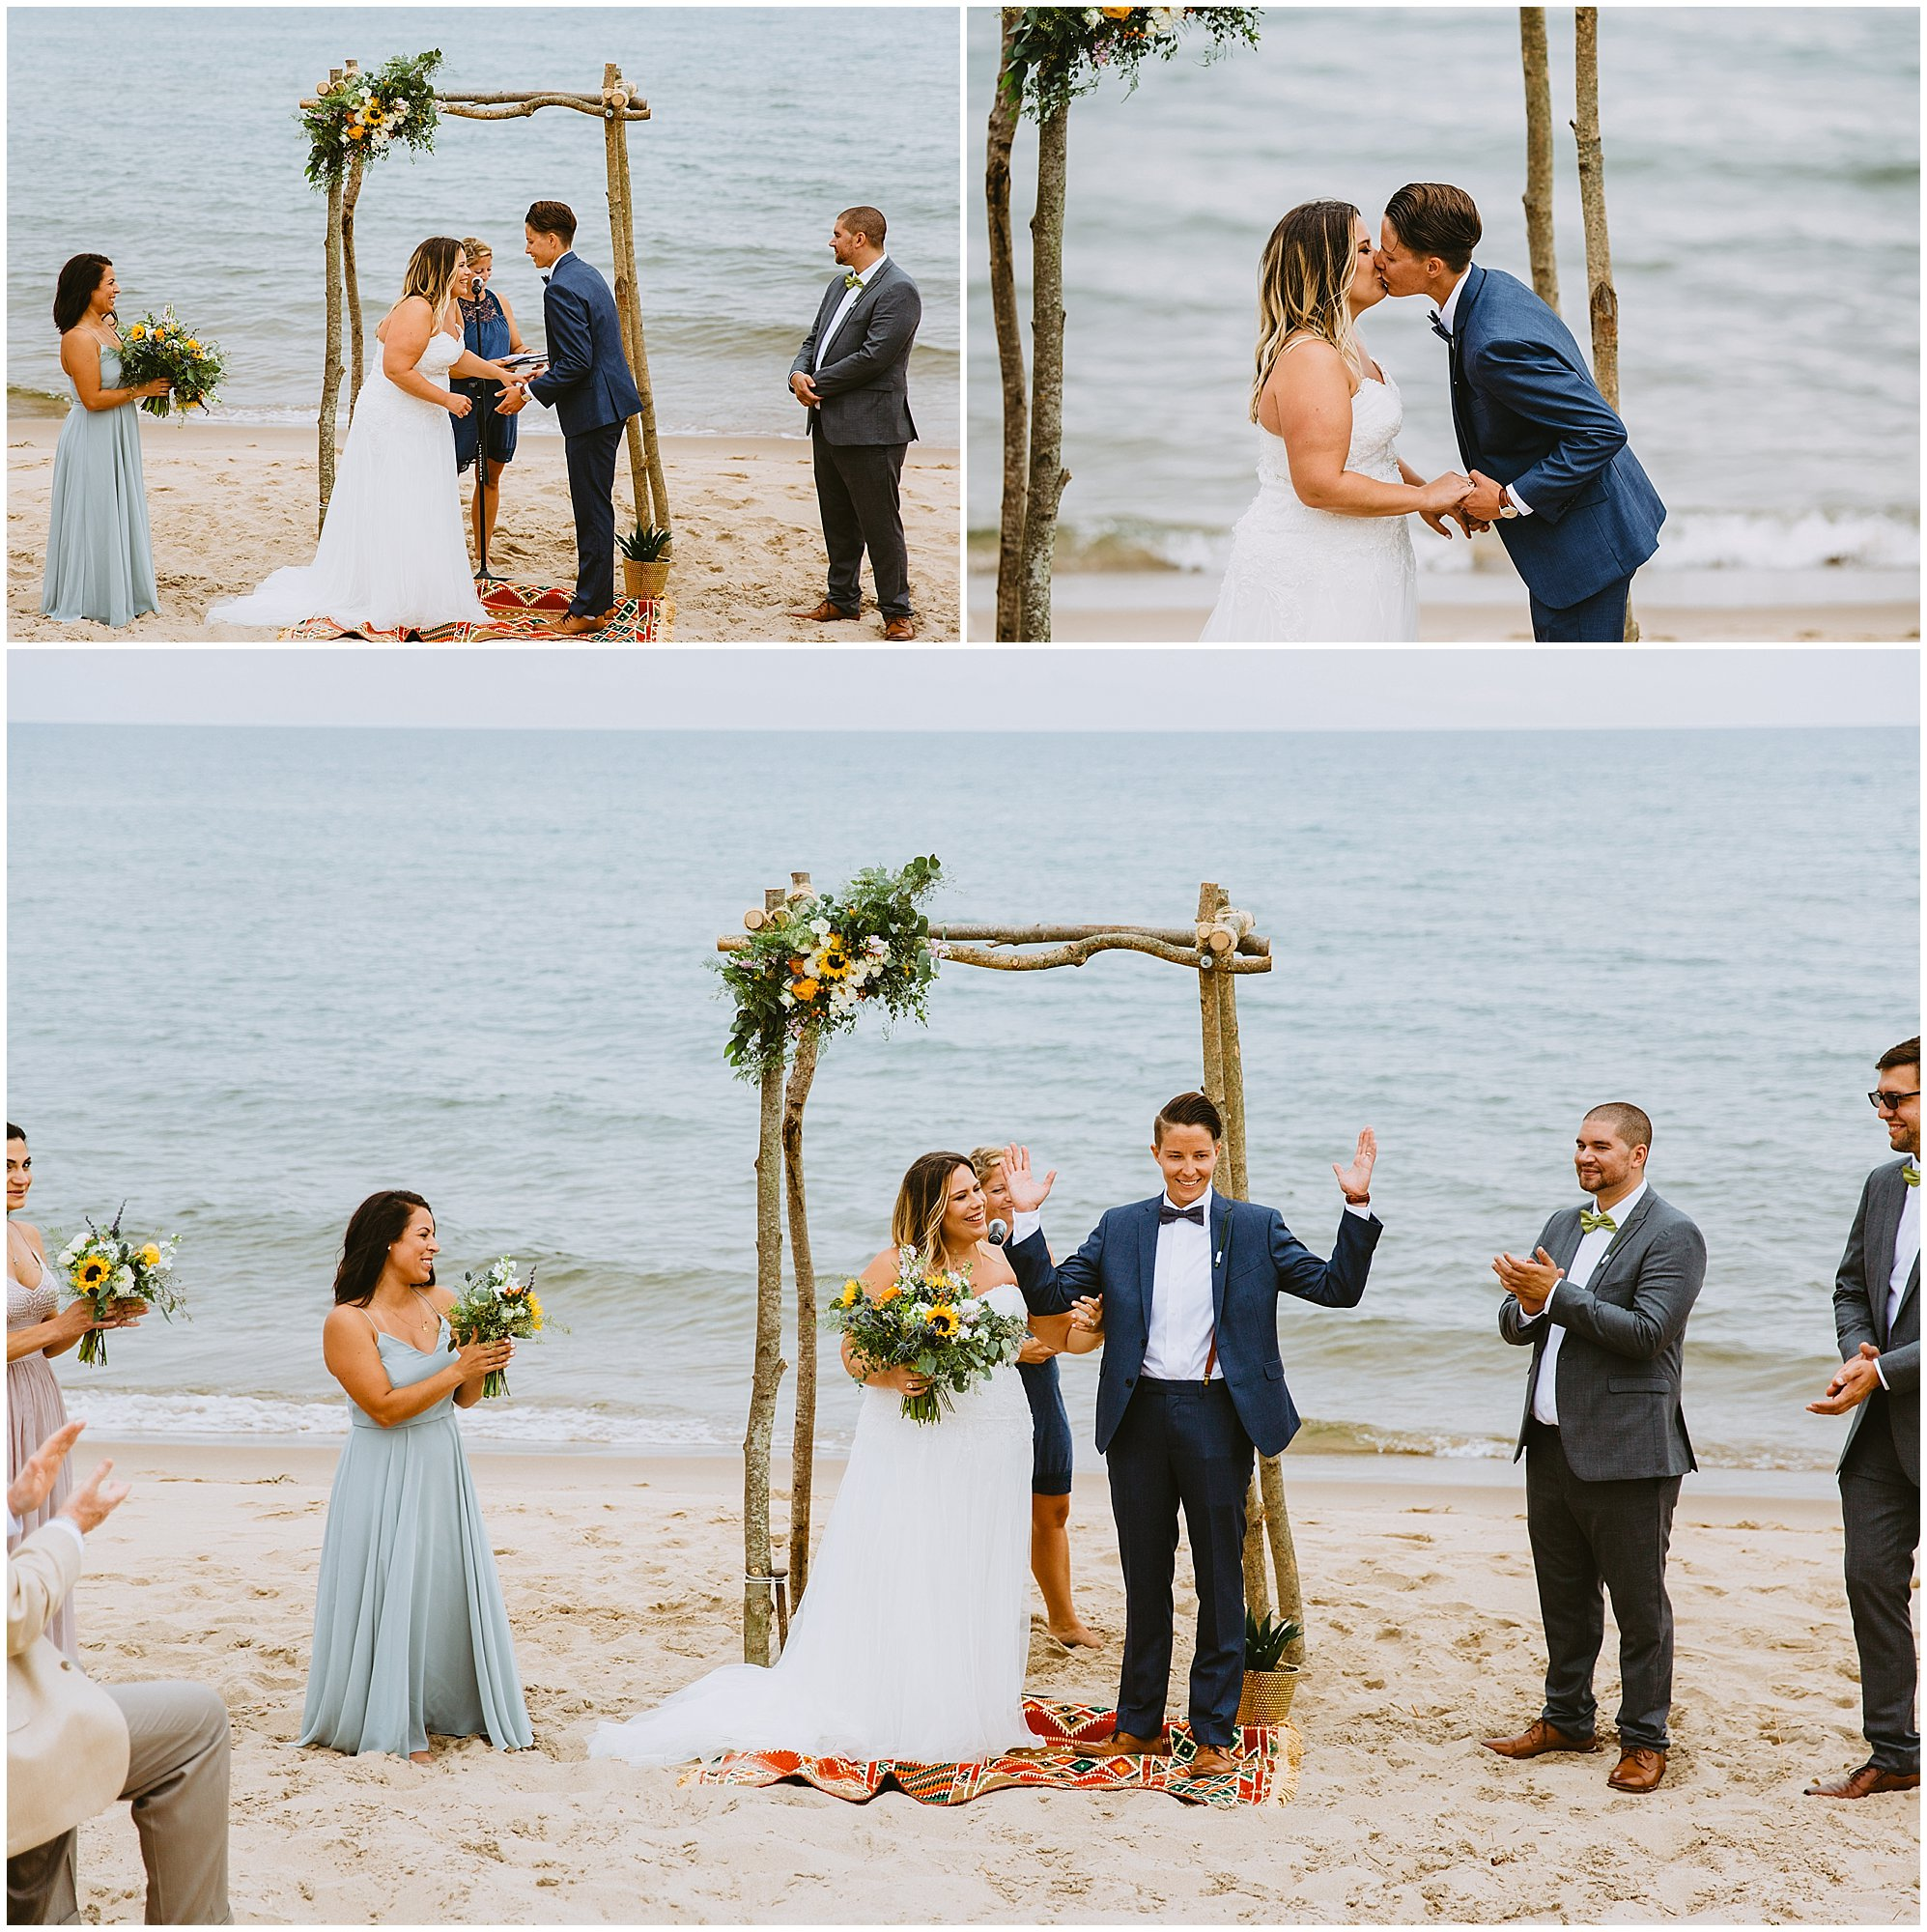 beach lgbtq ceremony wedding